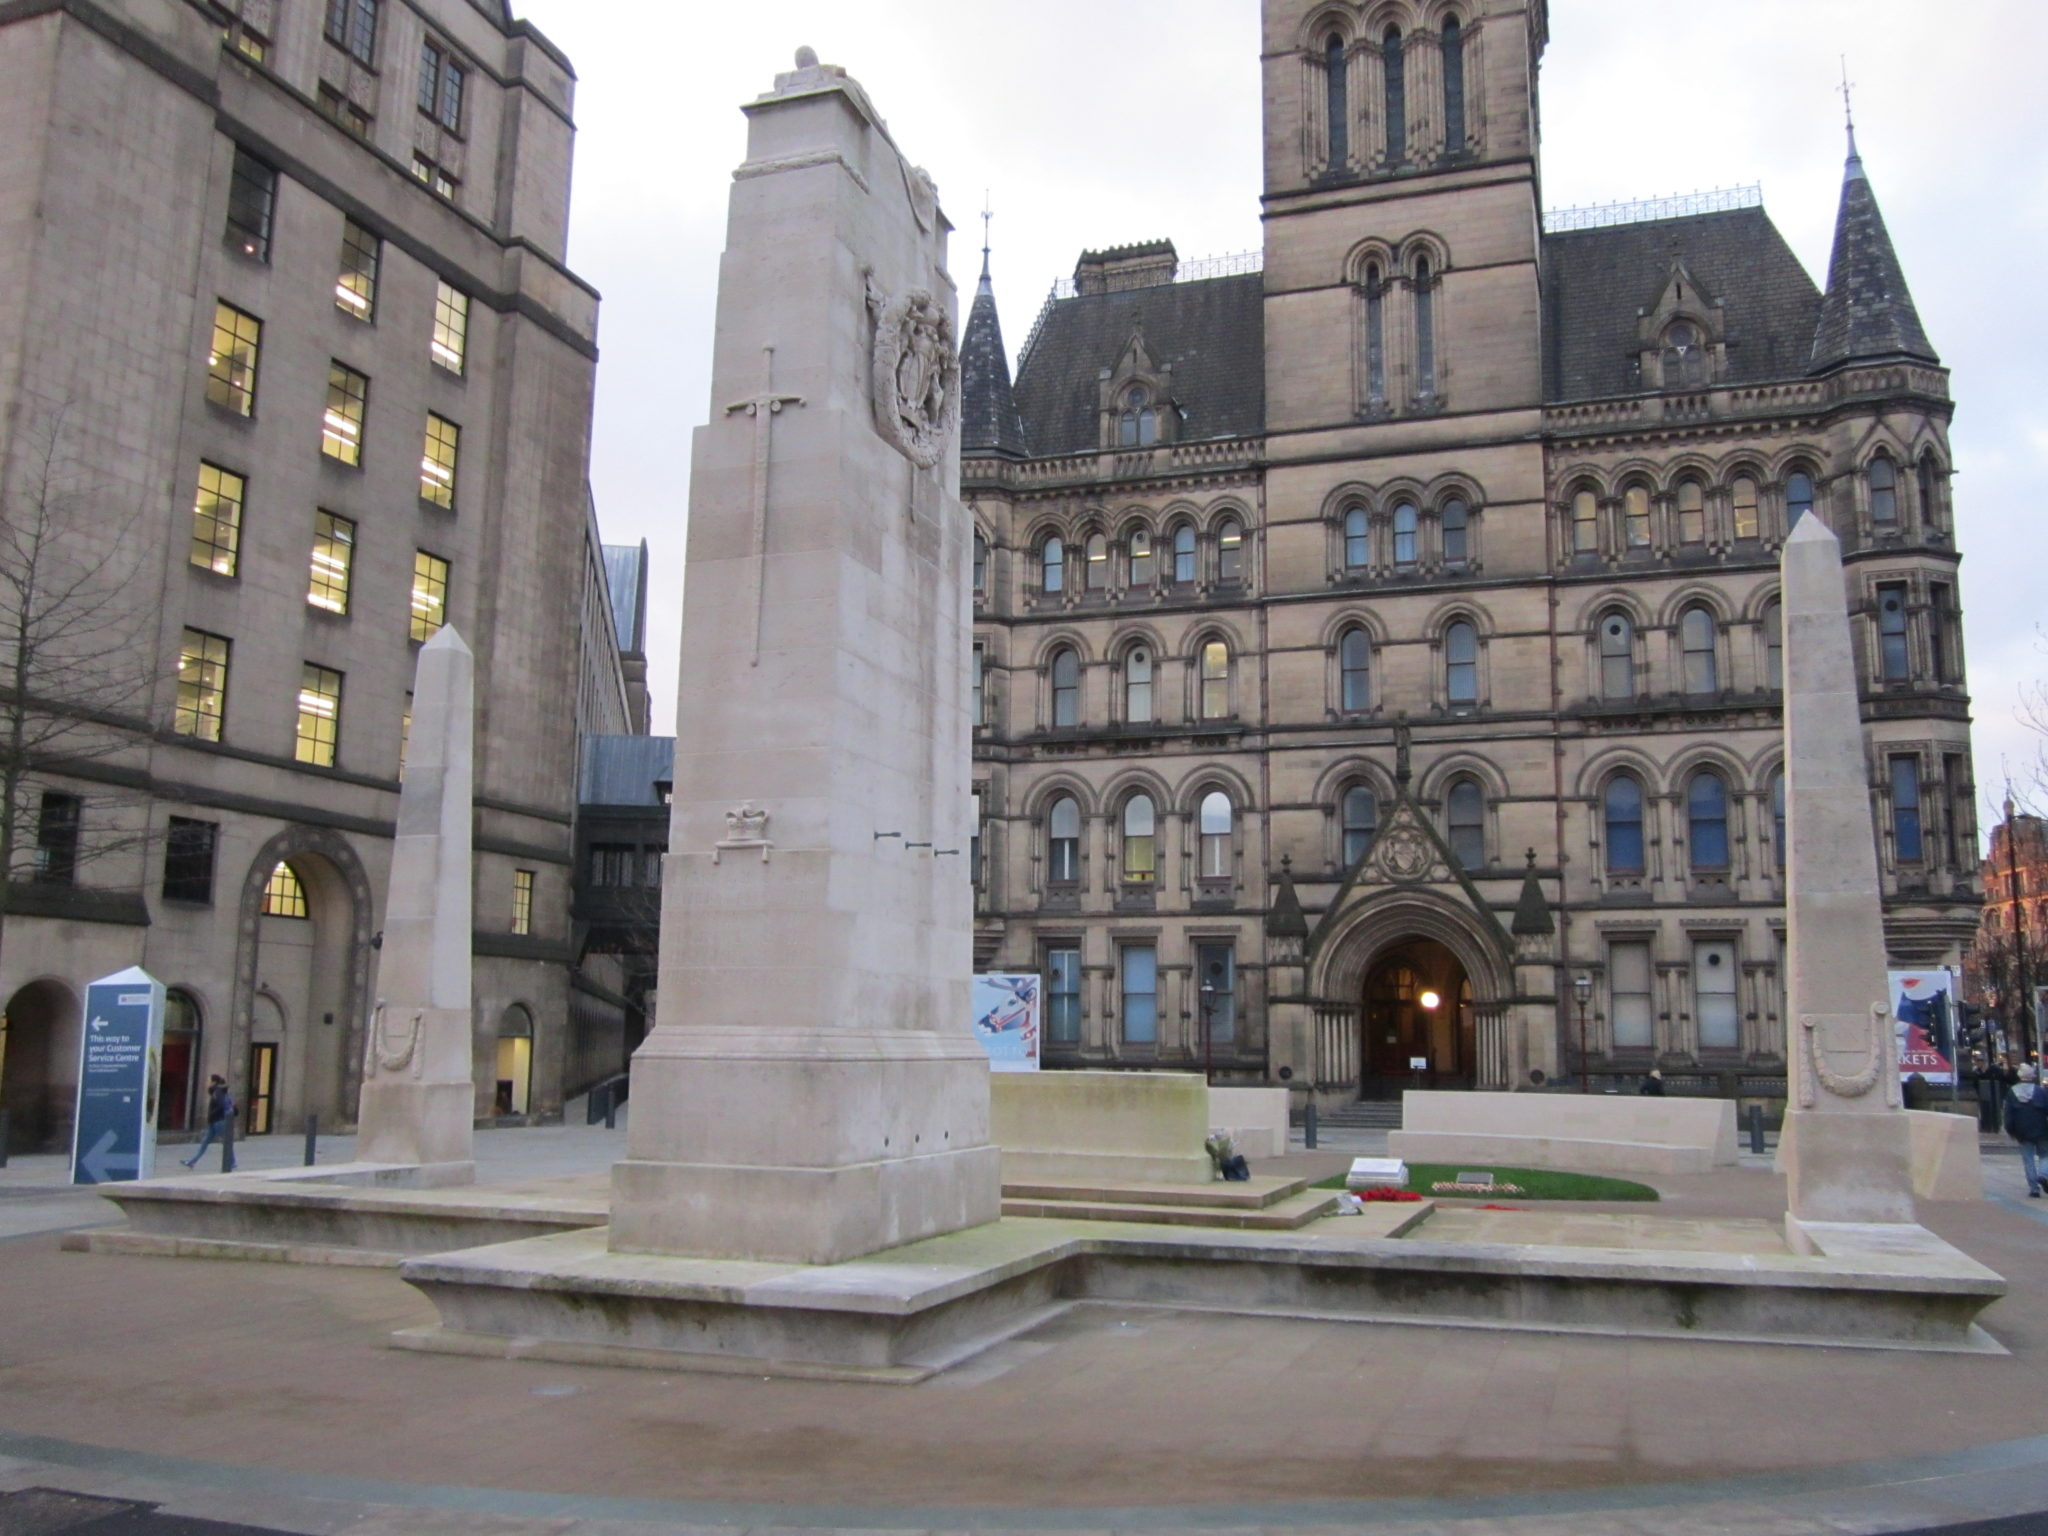 The Cenotaph at St Peter's Square Manchester